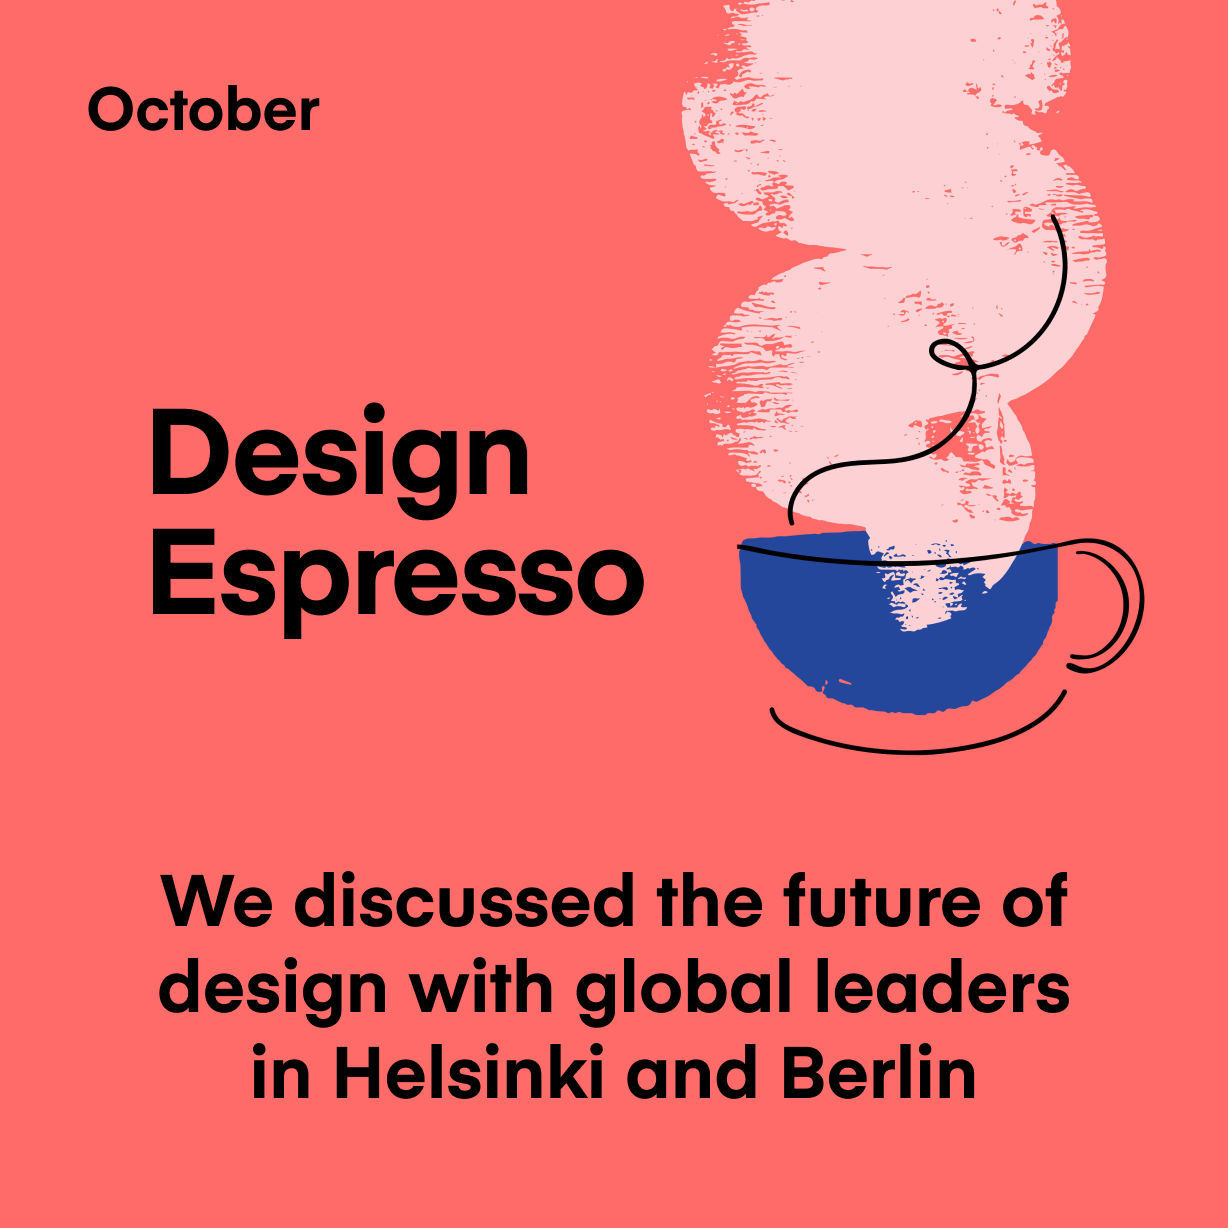 We discussed the future of design with global leaders in Helsinki and Berlin